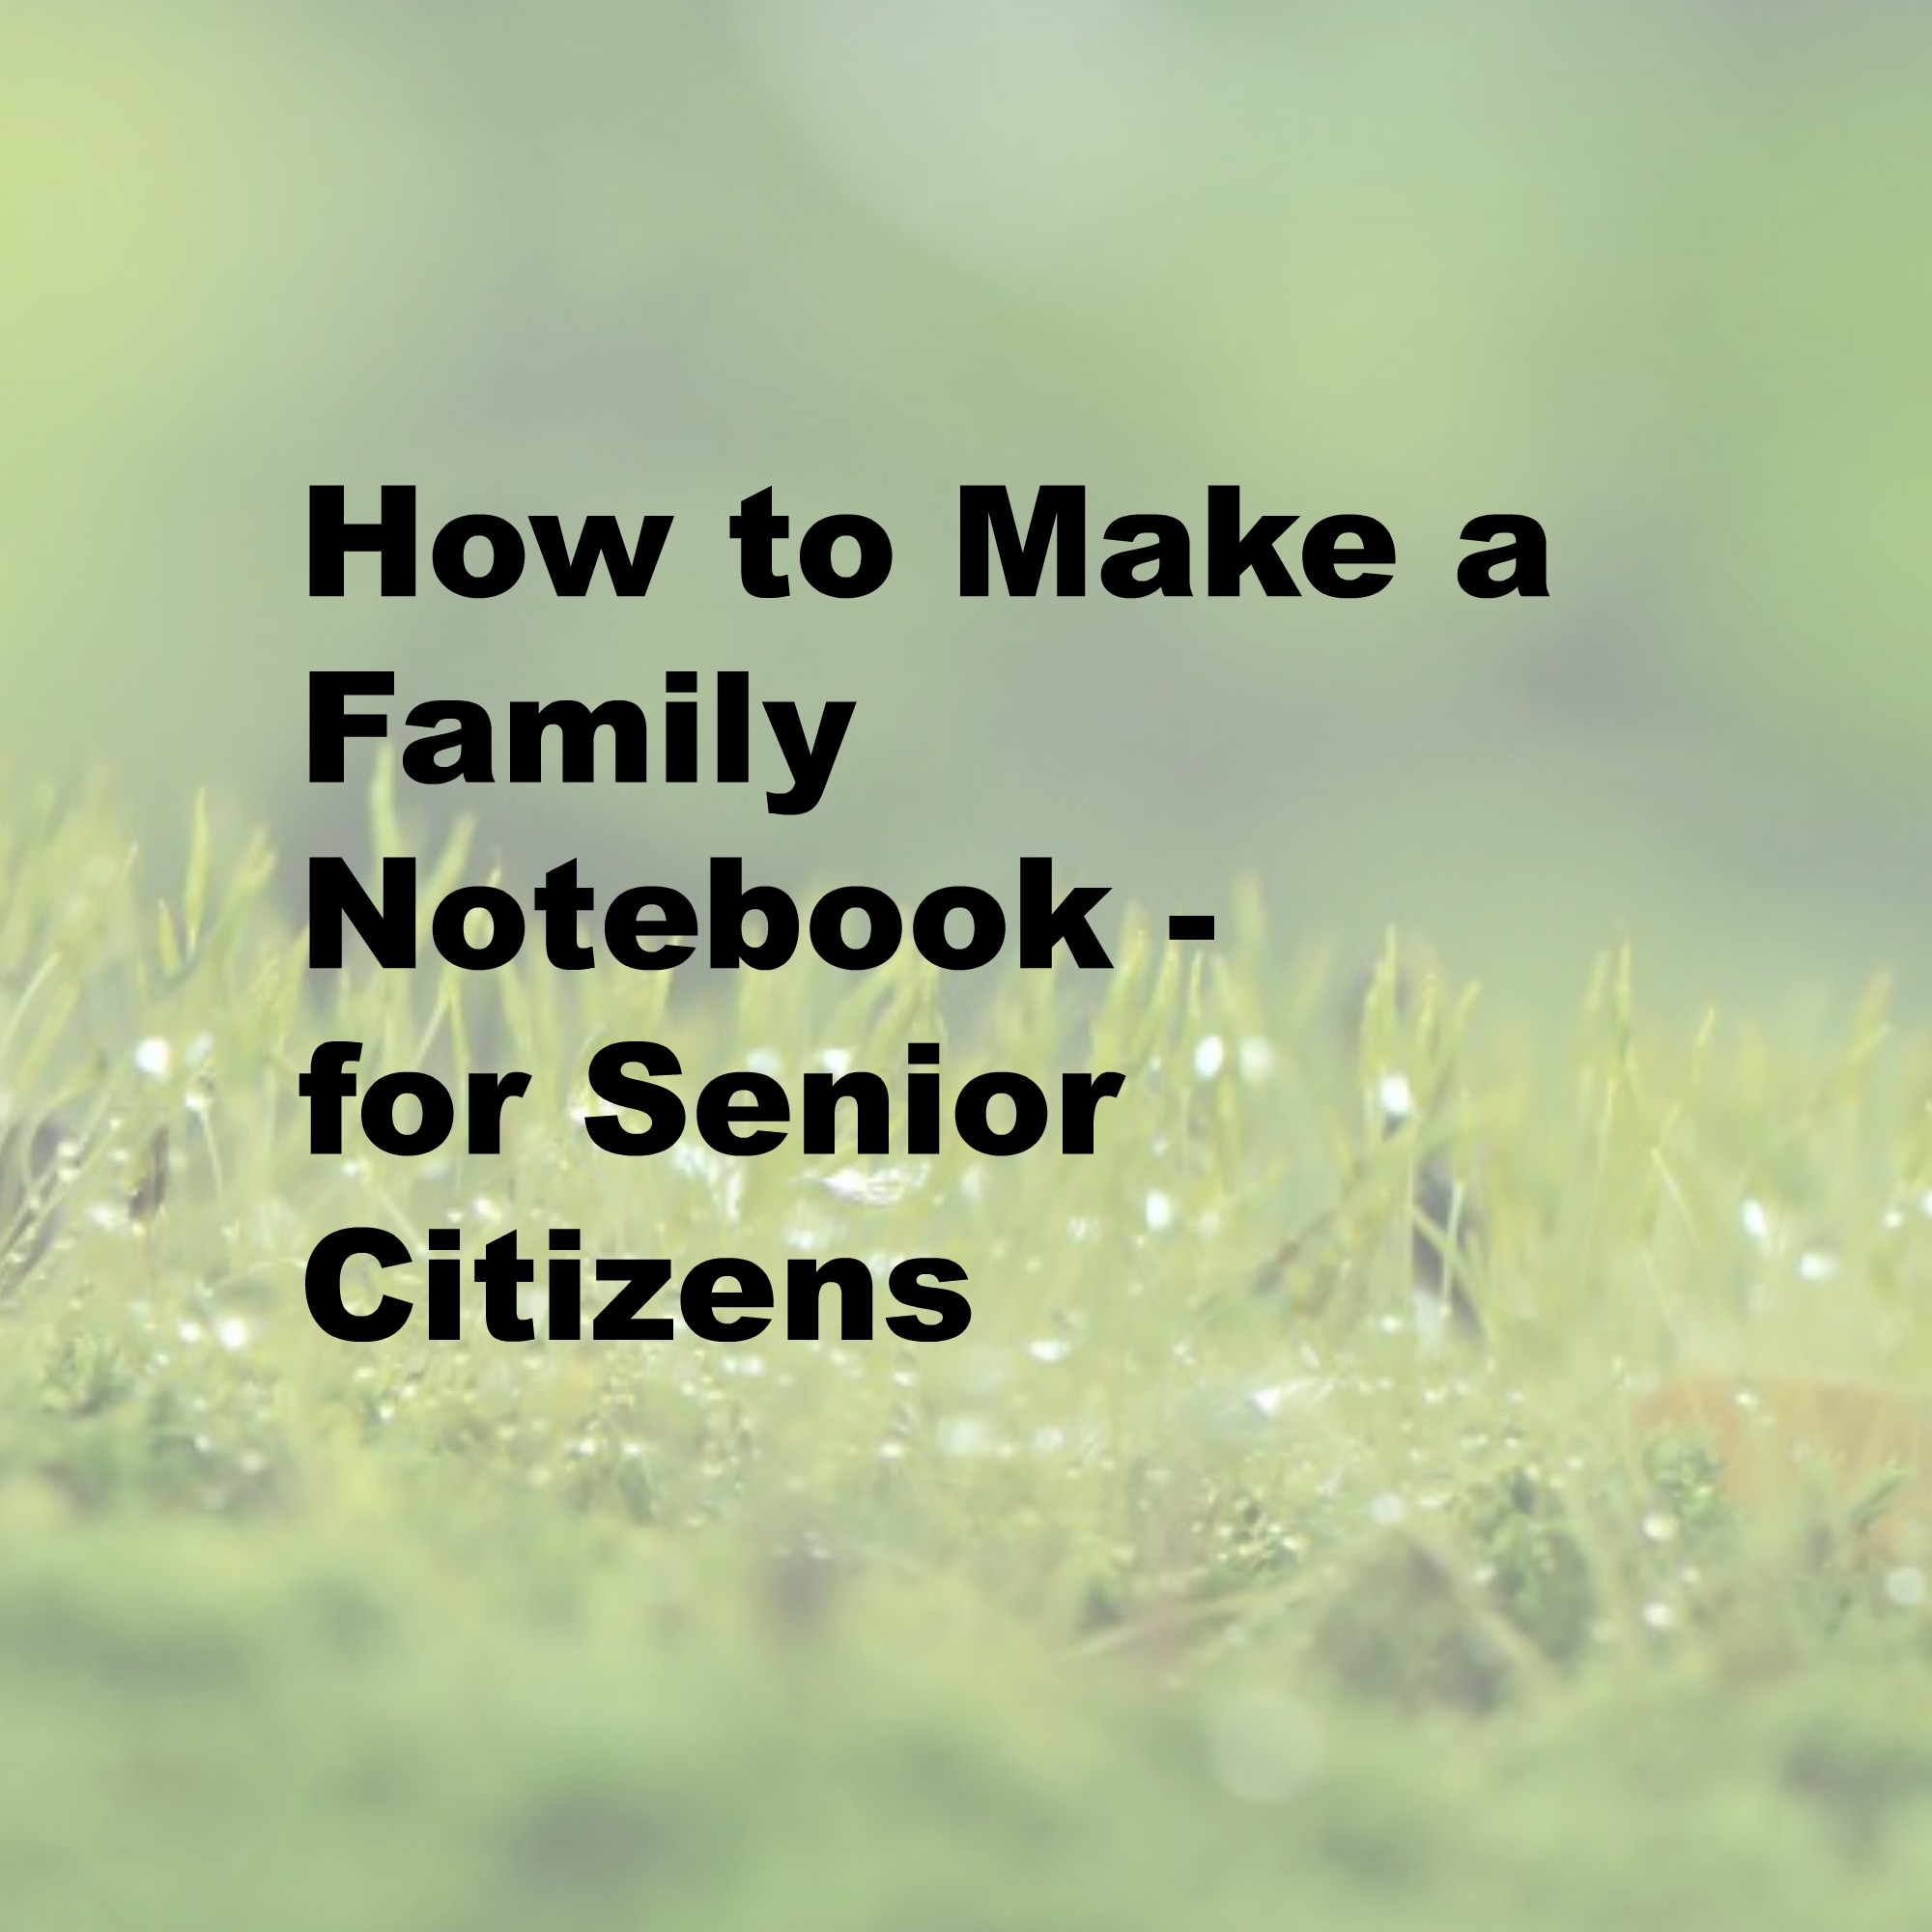 How to Make a Family Notebook